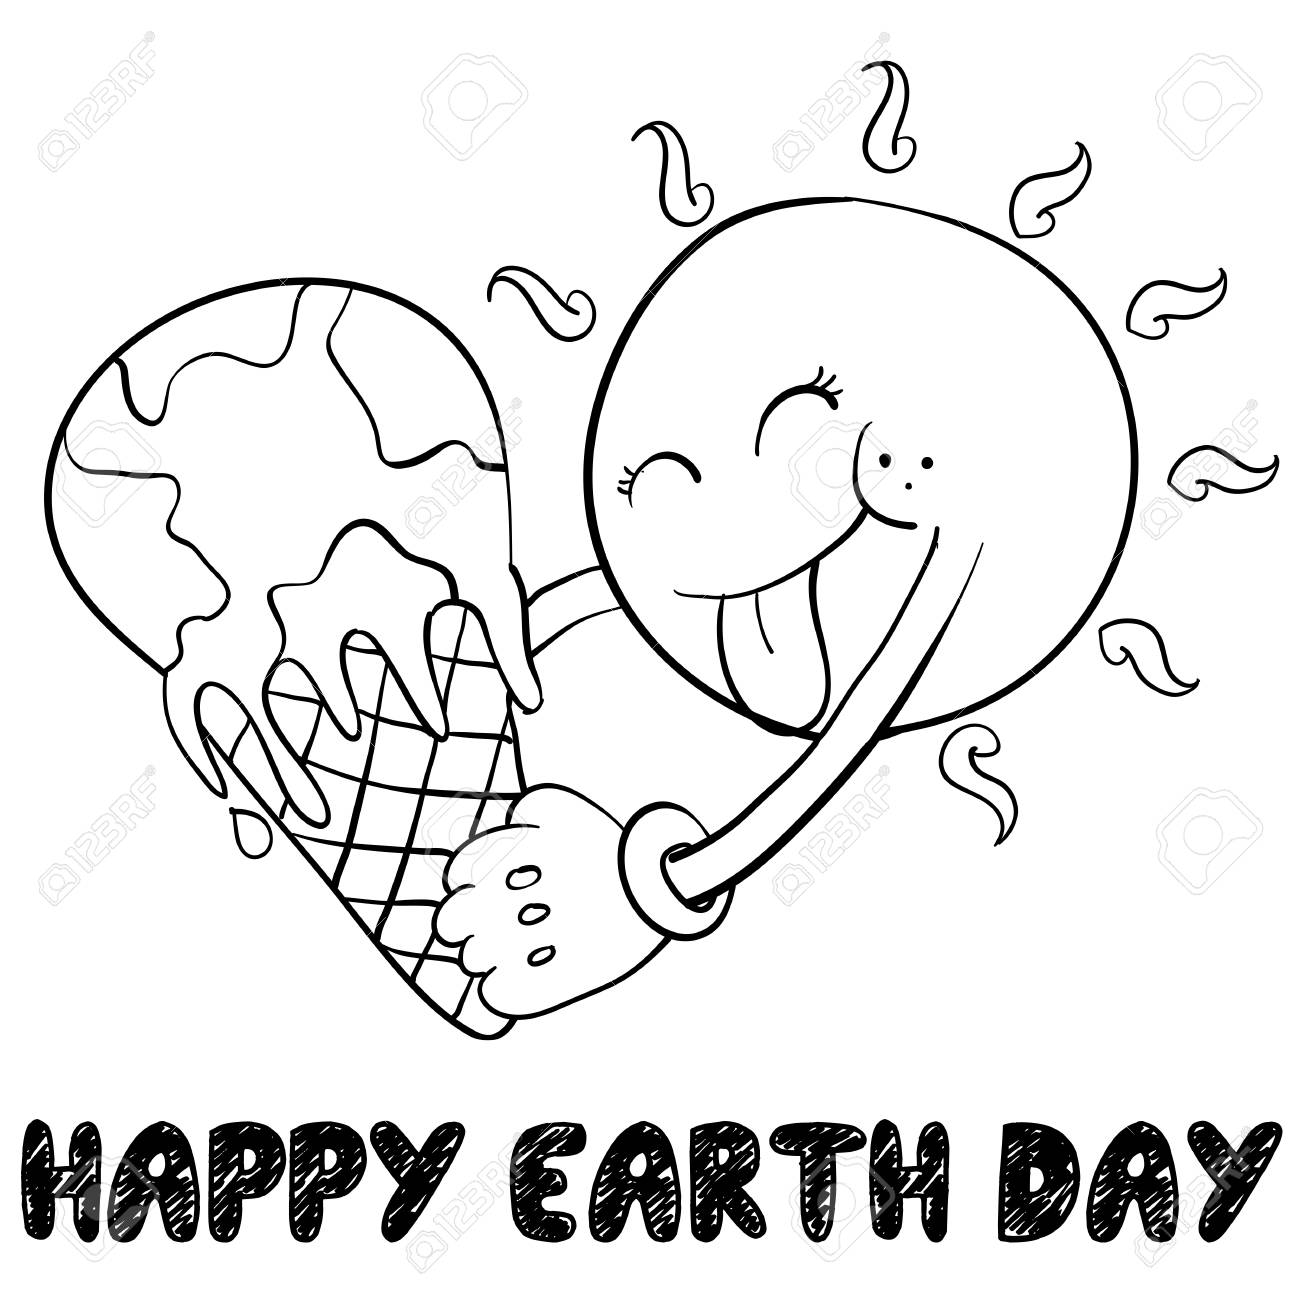 Happy Earth Day Style Hand Draw Vector Art